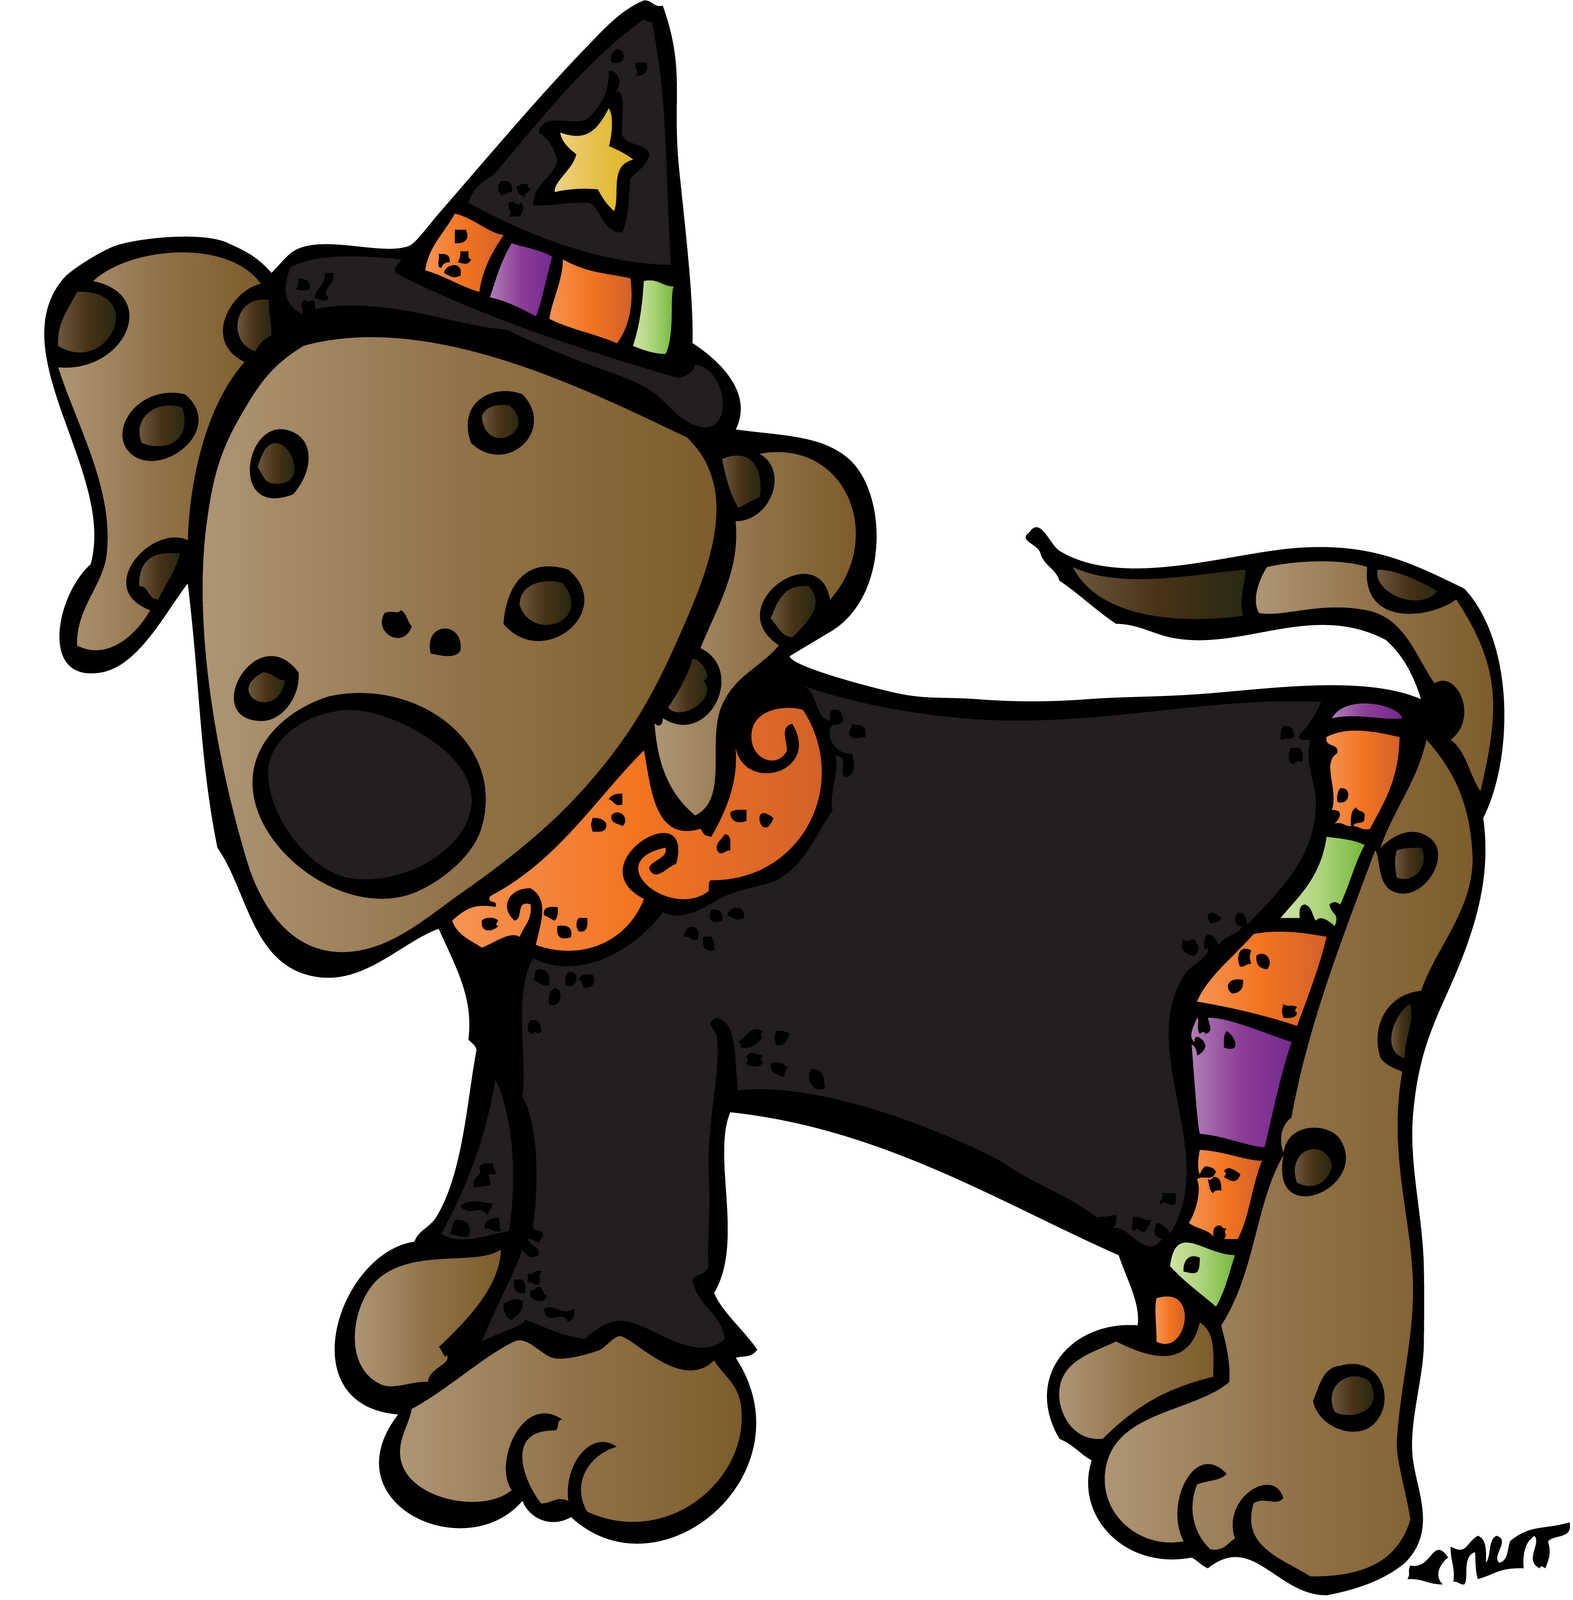 Happy birthday dog clipart image royalty free 28+ Collection of Free Halloween Dog Clipart | High quality, free ... image royalty free